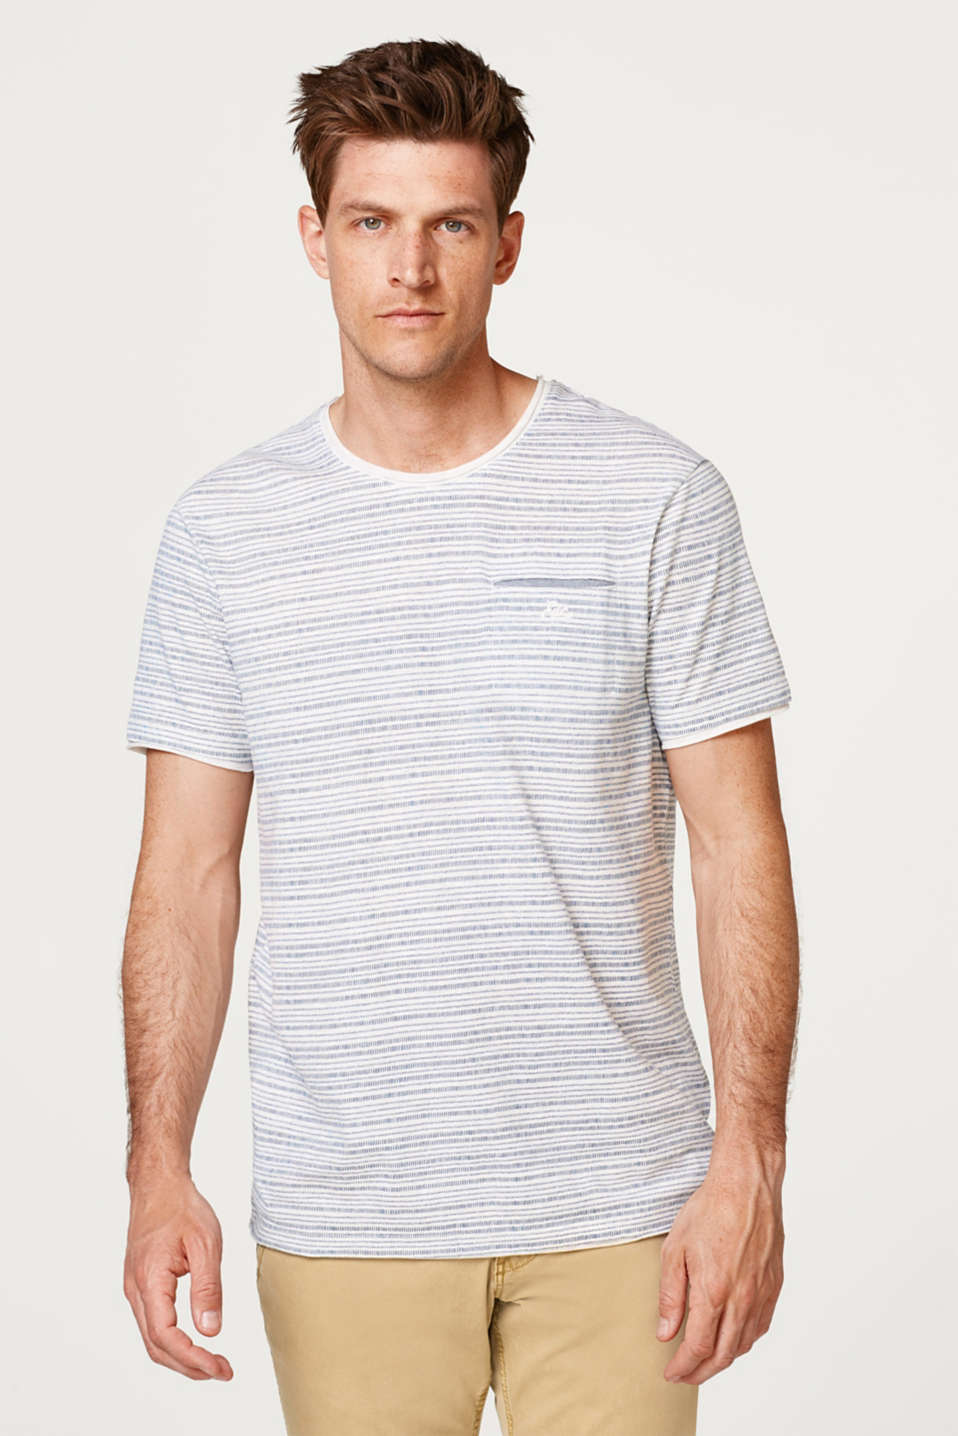 edc - Jersey T-shirt with a striped print in cotton